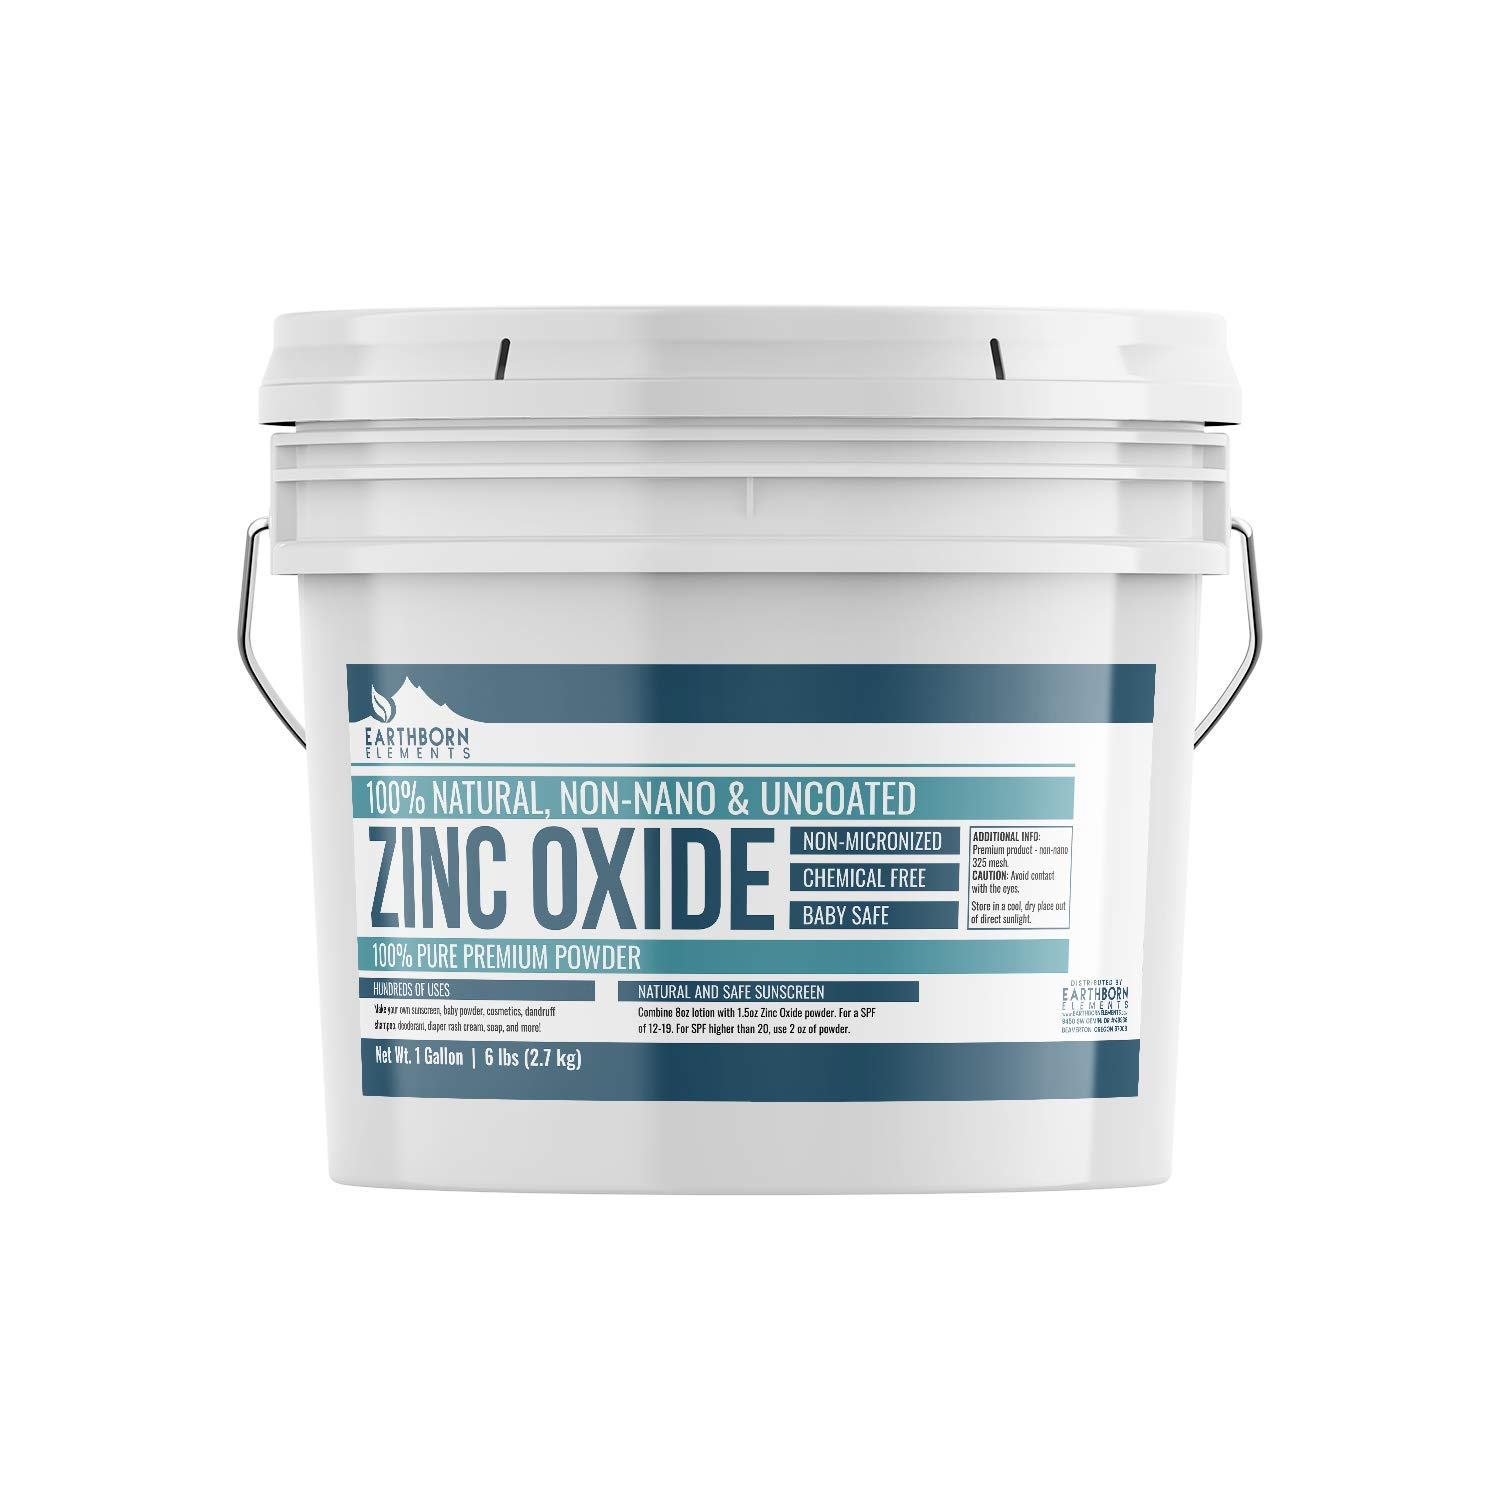 Zinc Oxide (1 gallon (6 lbs.)) by Earthborn Elements, Resealable Buckets, Non-Nano, Un-coated, Food & USP Pharmaceutical Grade, Powder For Sunscreen, Diaper Rash Ointment, Burn Relief, & More by Earthborn Elements